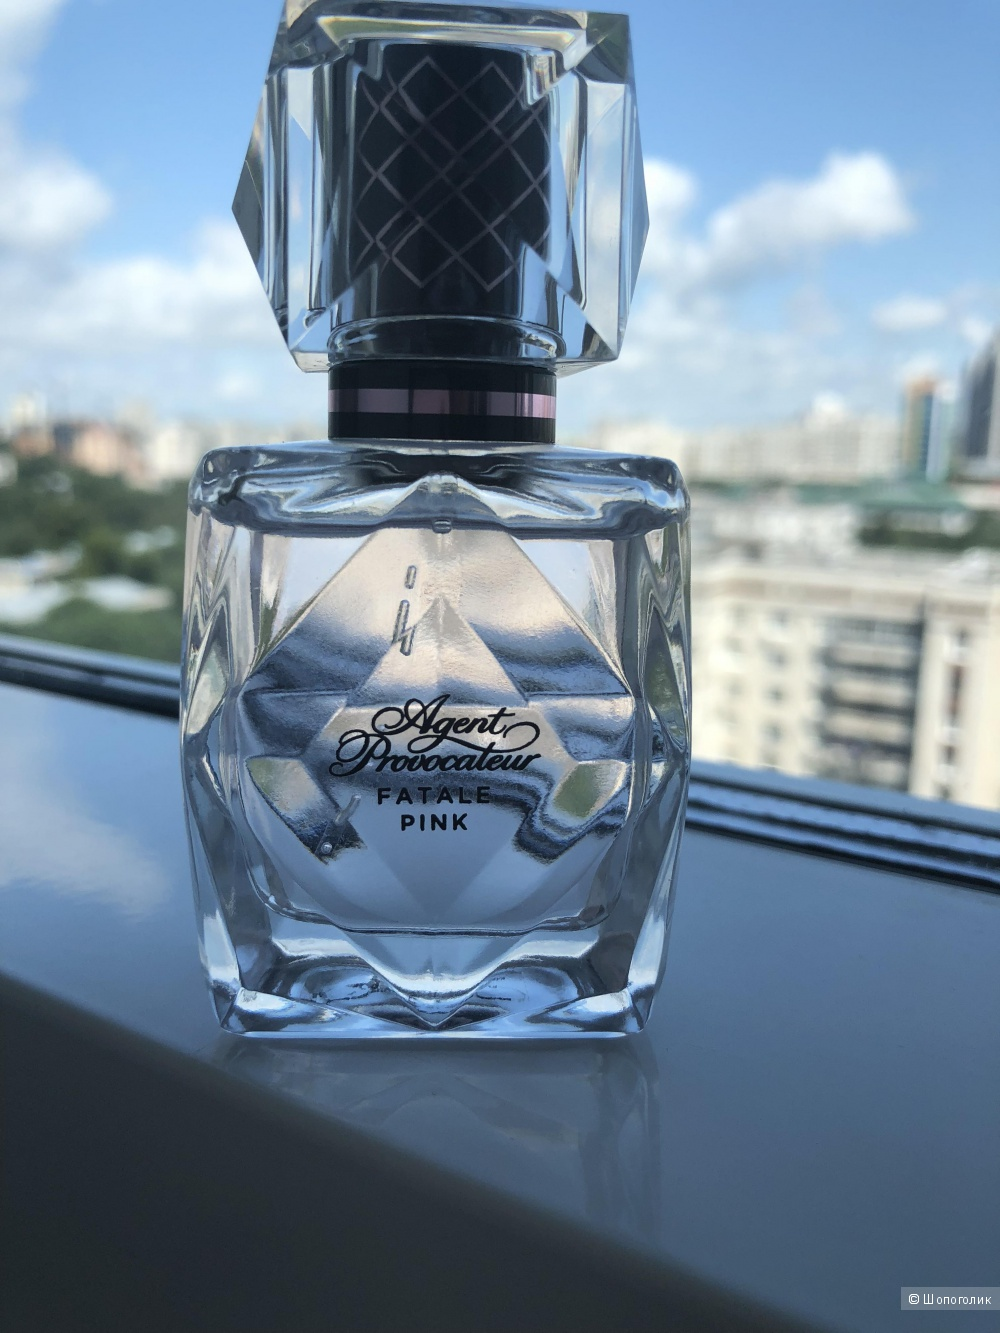 Парфюмерная вода  Agent provocateur fatale pink 30 мл